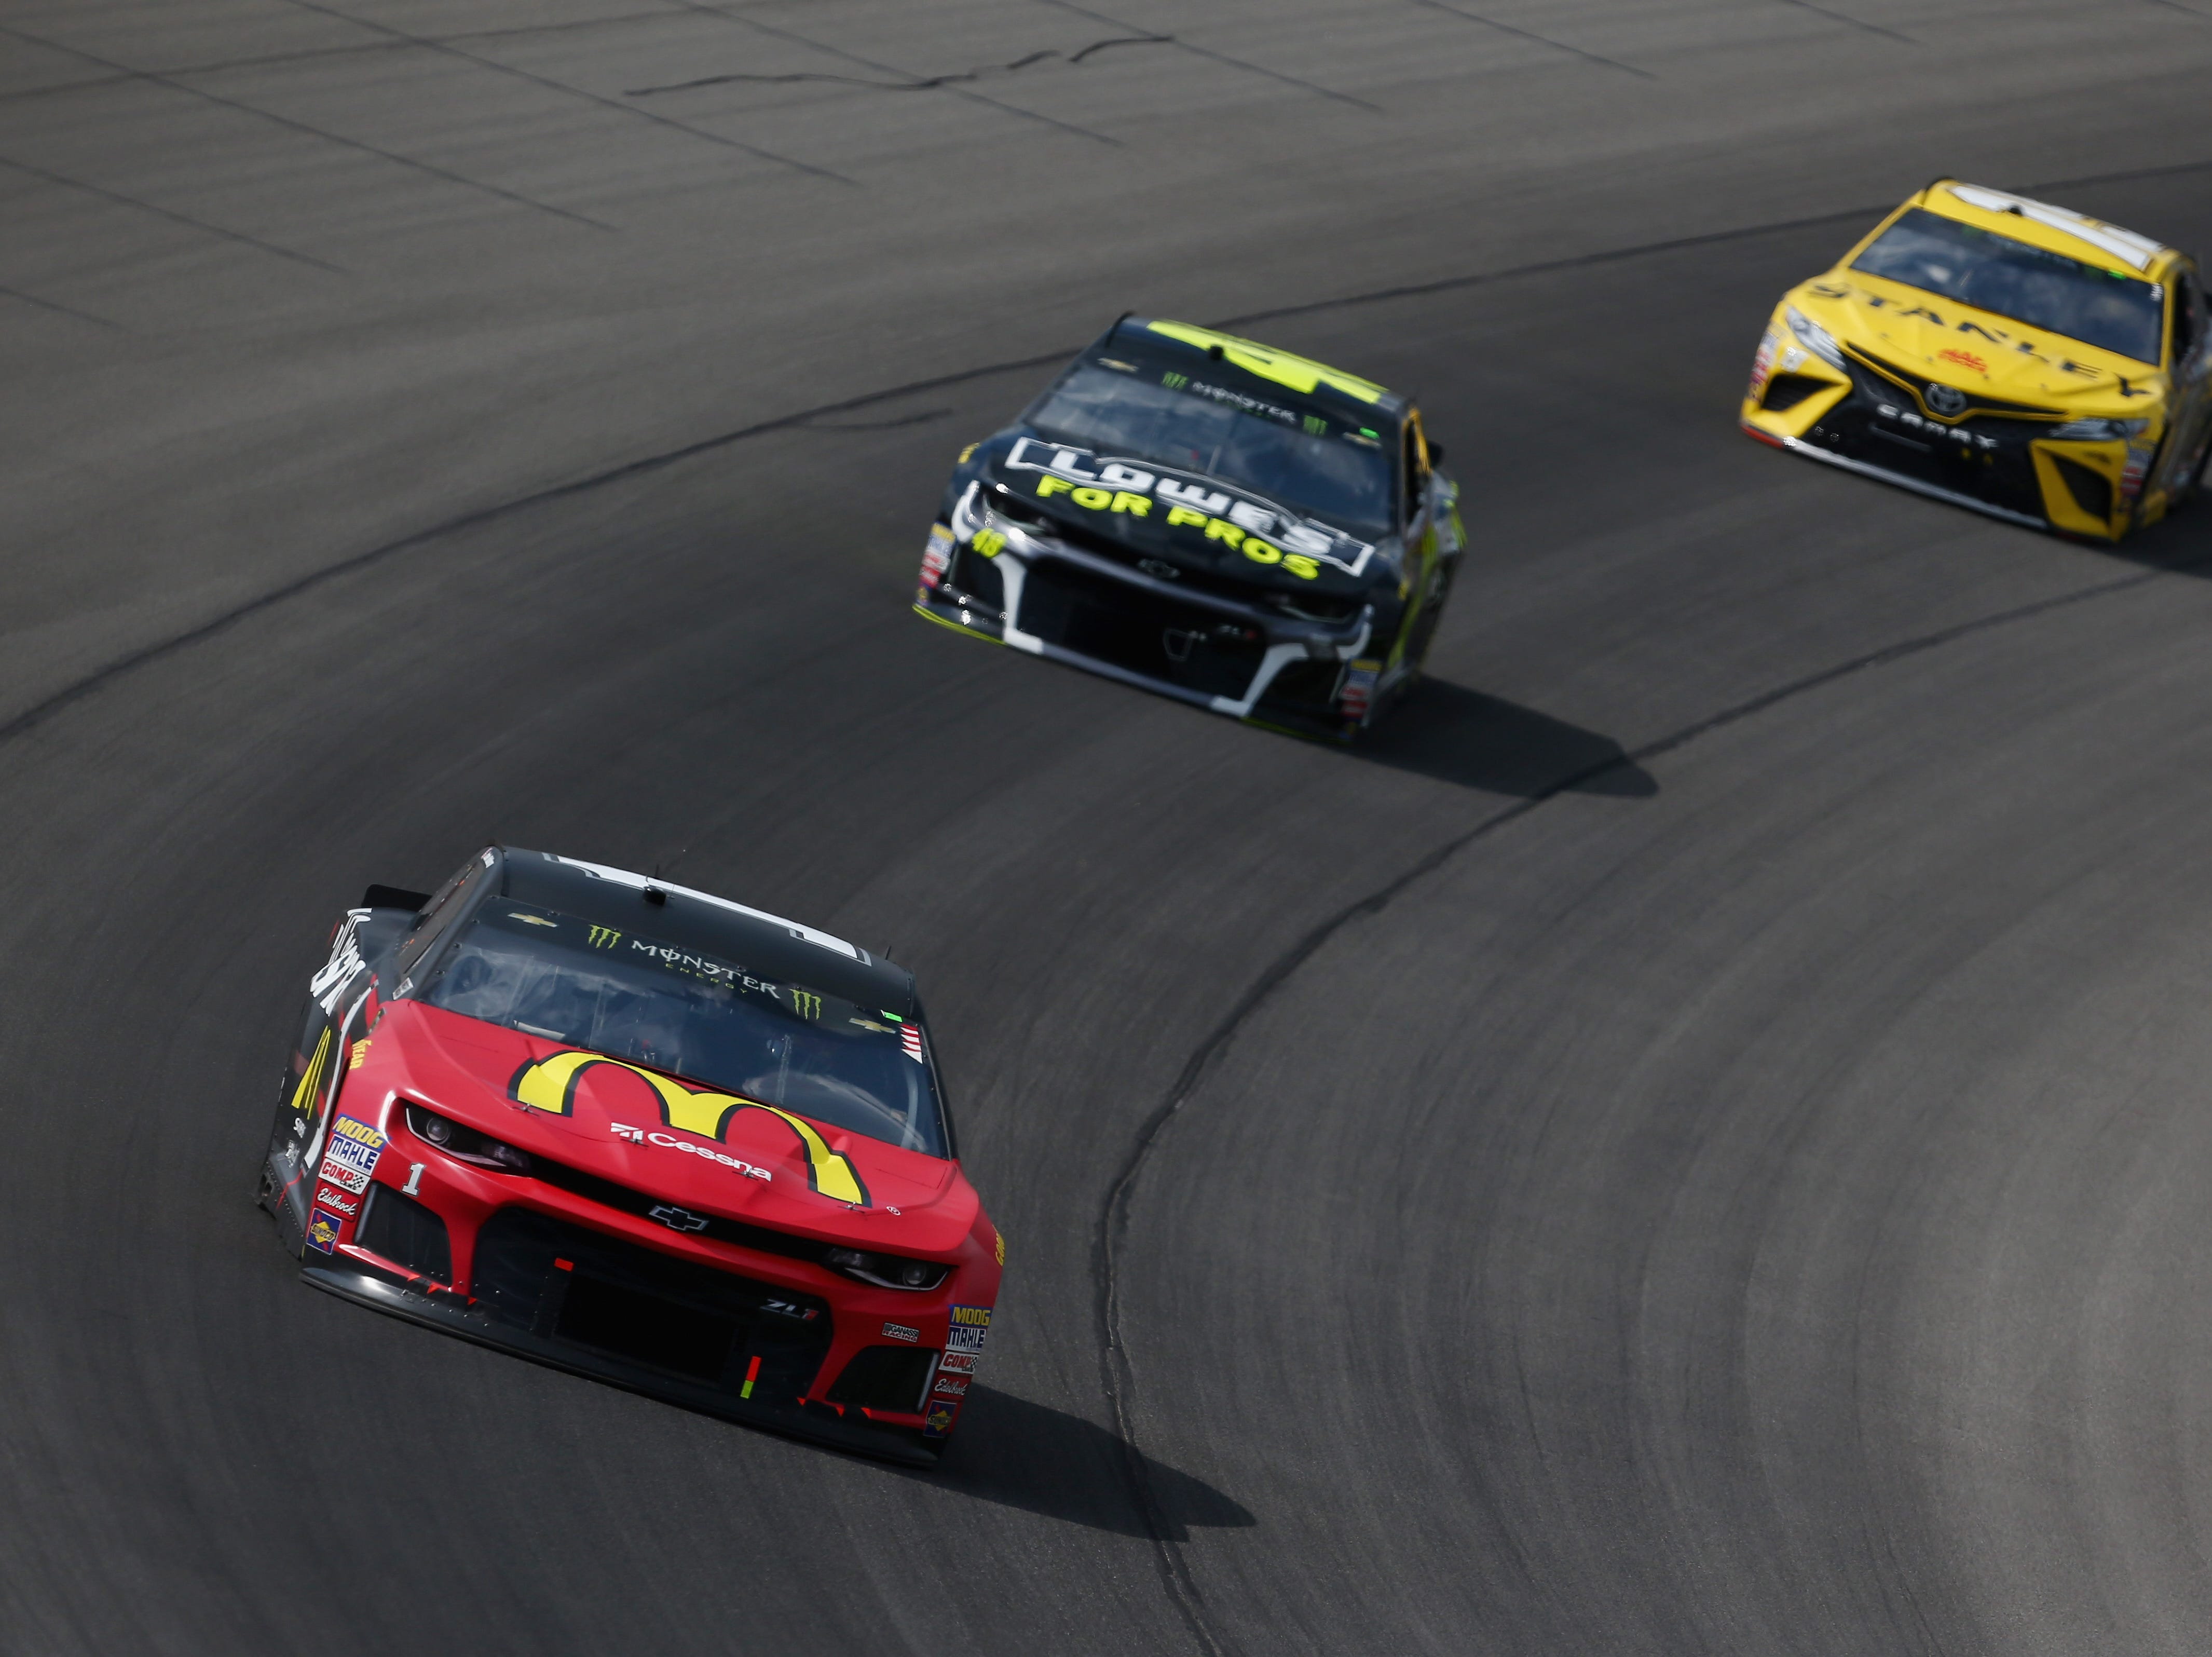 Jamie McMurray, driver of the #1 McDonald's/Cessna Chevrolet, leads Jimmie Johnson, driver of the #48 Lowe's for APros Chevrolet, and Daniel Suarez, driver of the #19 Stanley Toyota, during the Monster Energy NASCAR Cup Series Consmers Energy 400 at Michigan International Speedway.